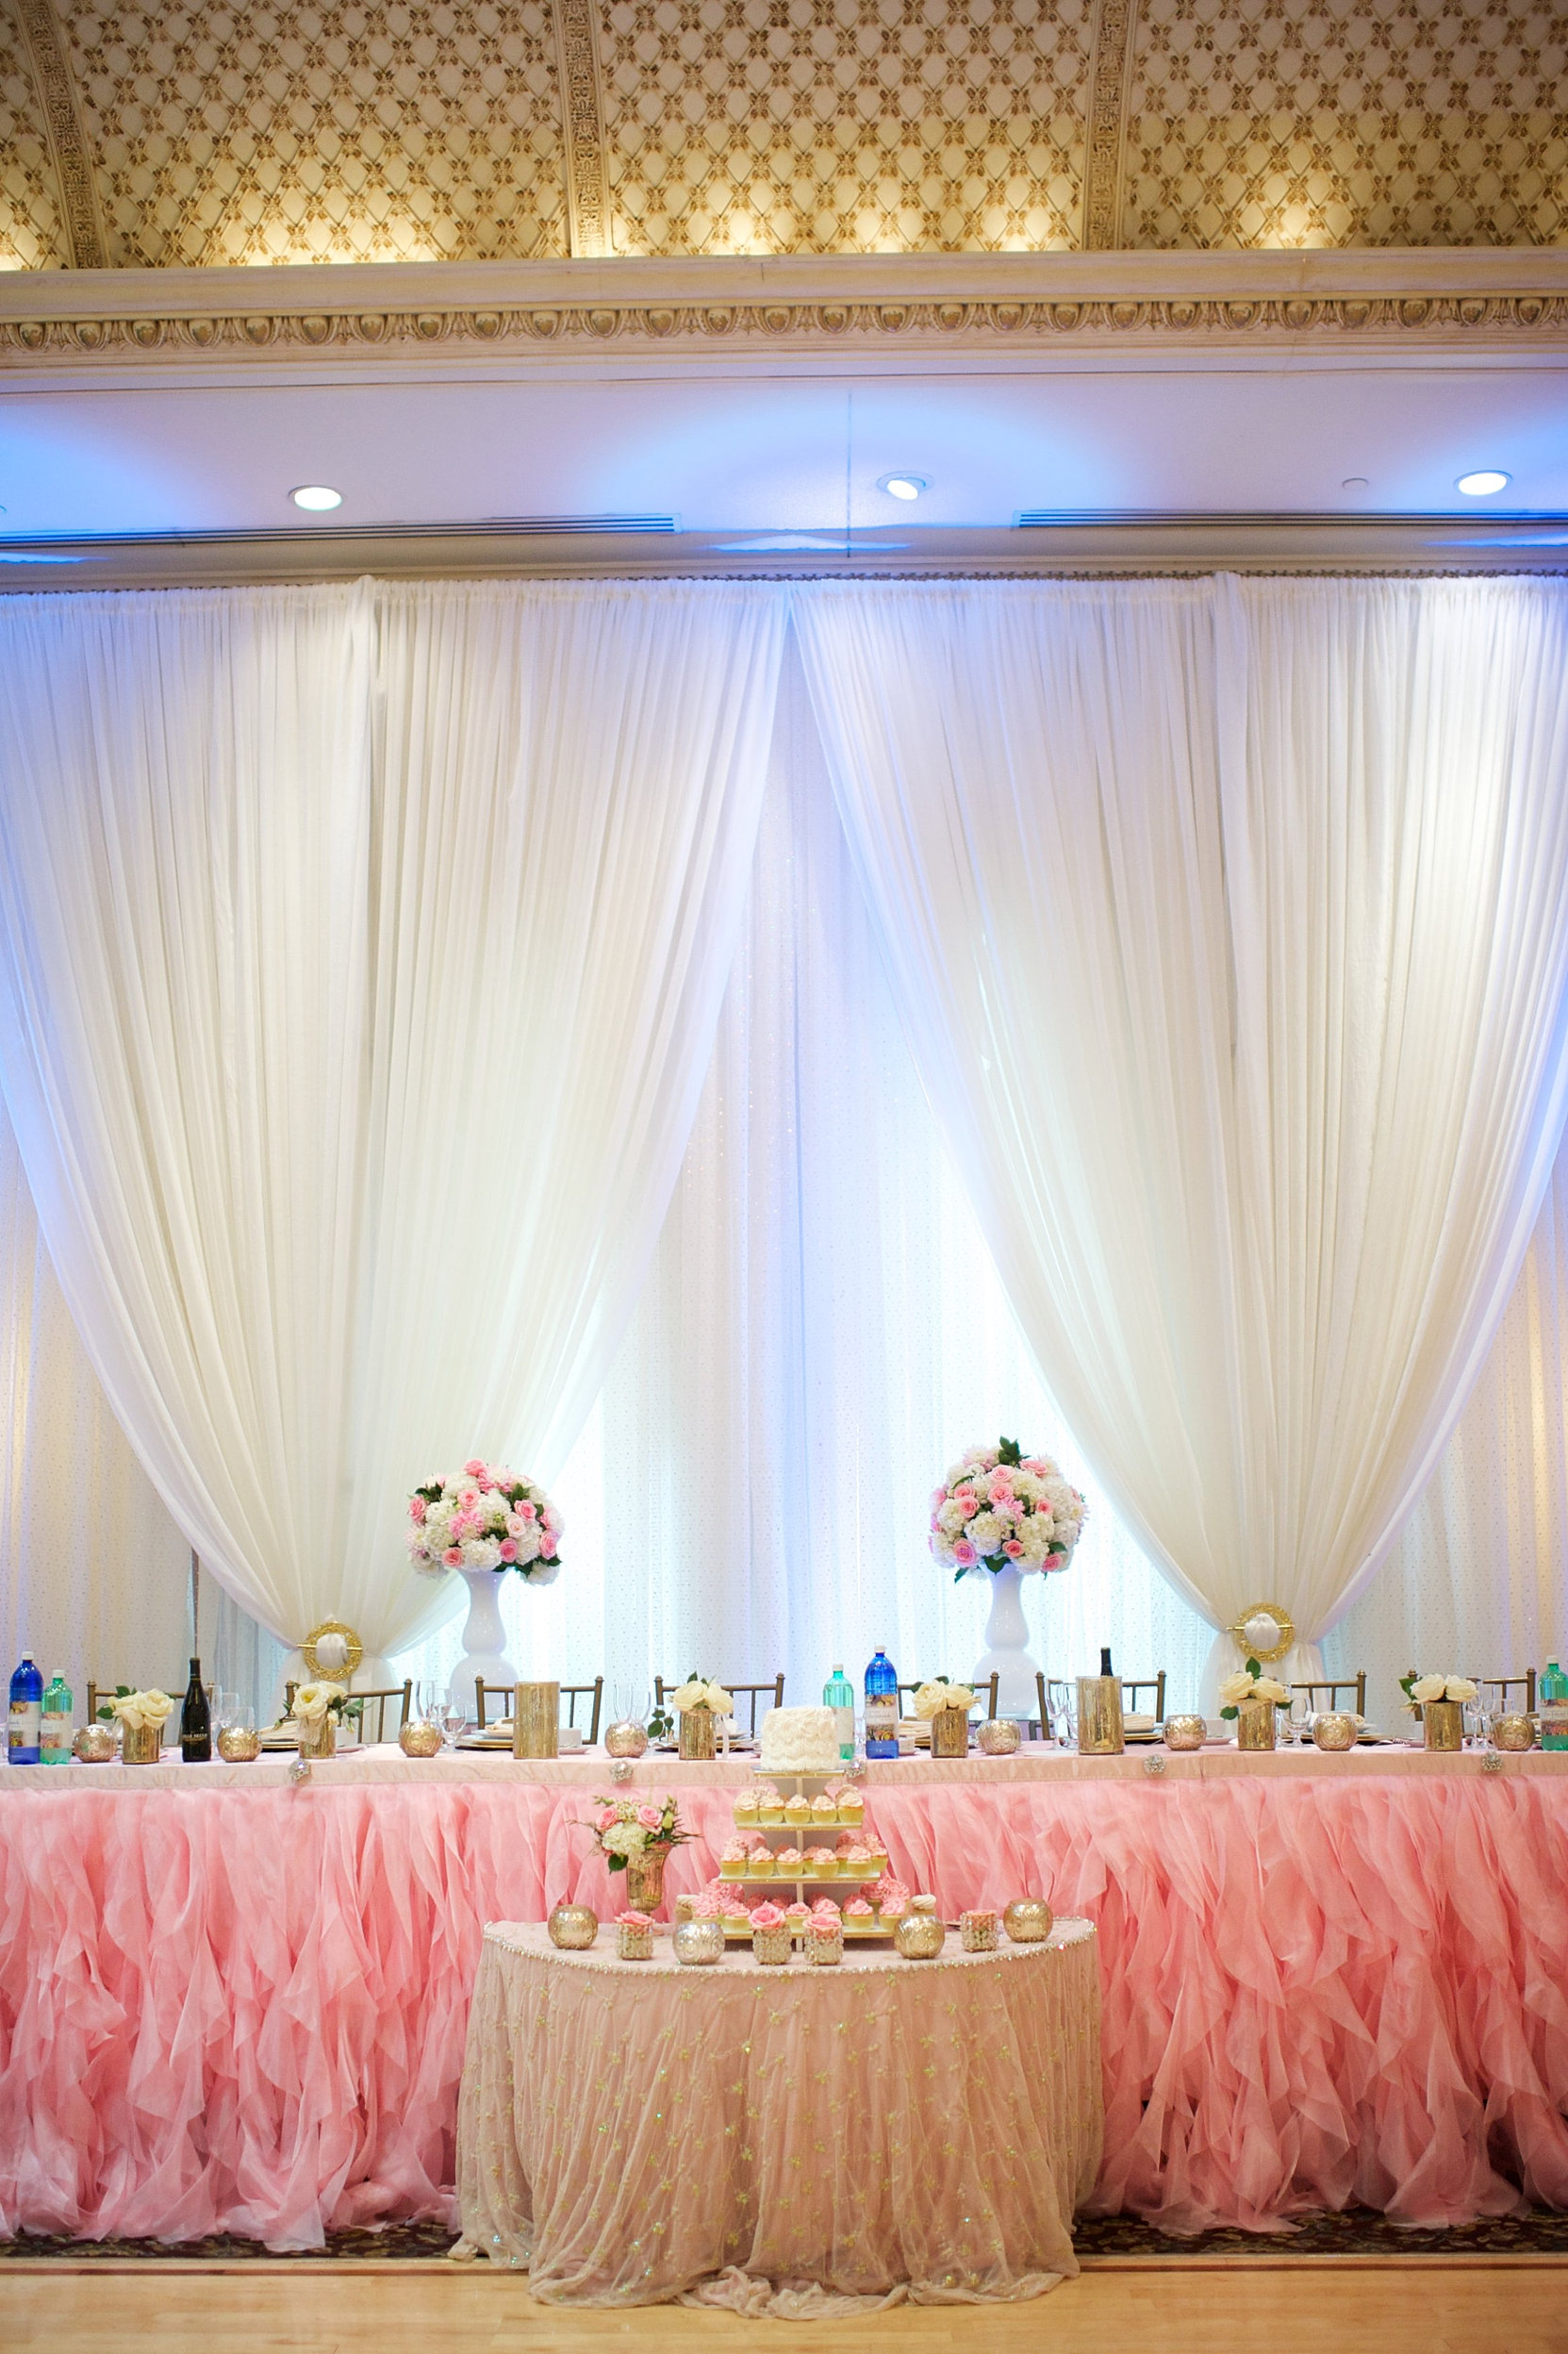 Unique wedding reception decorations coventry wedding kijiji wedding decorations image collections wedding decoration junglespirit Choice Image